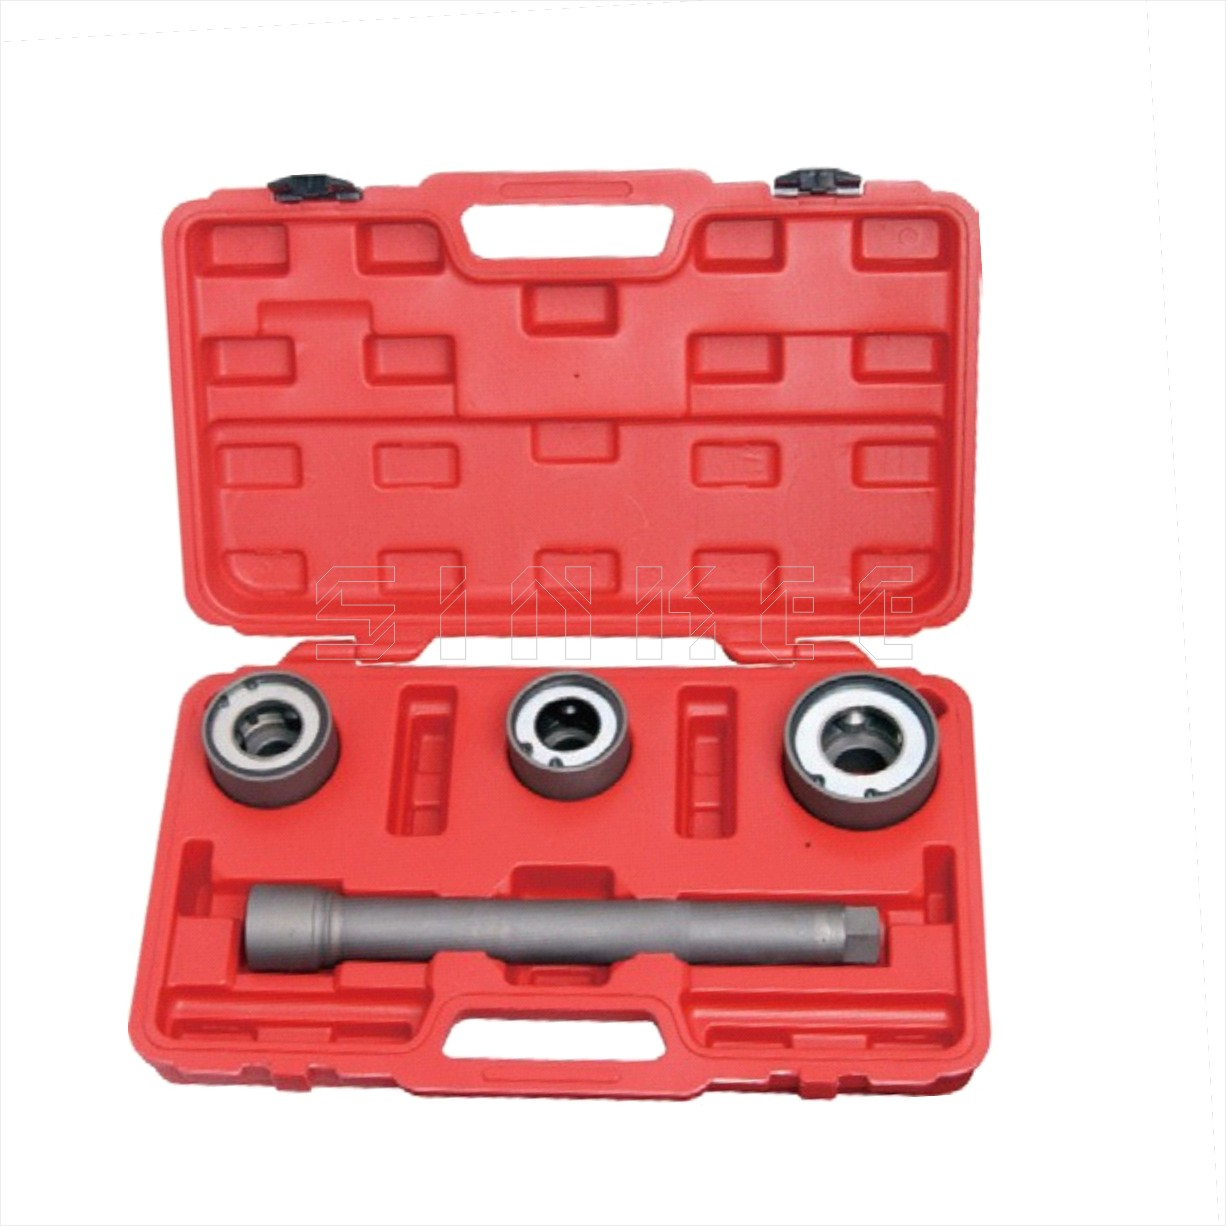 4pc Track Rod End Remover Installer Tool Kit Steering Rack Tie Rod End Axial Joint 30-35mm 35-40mm 40-45mm SK1048 цена